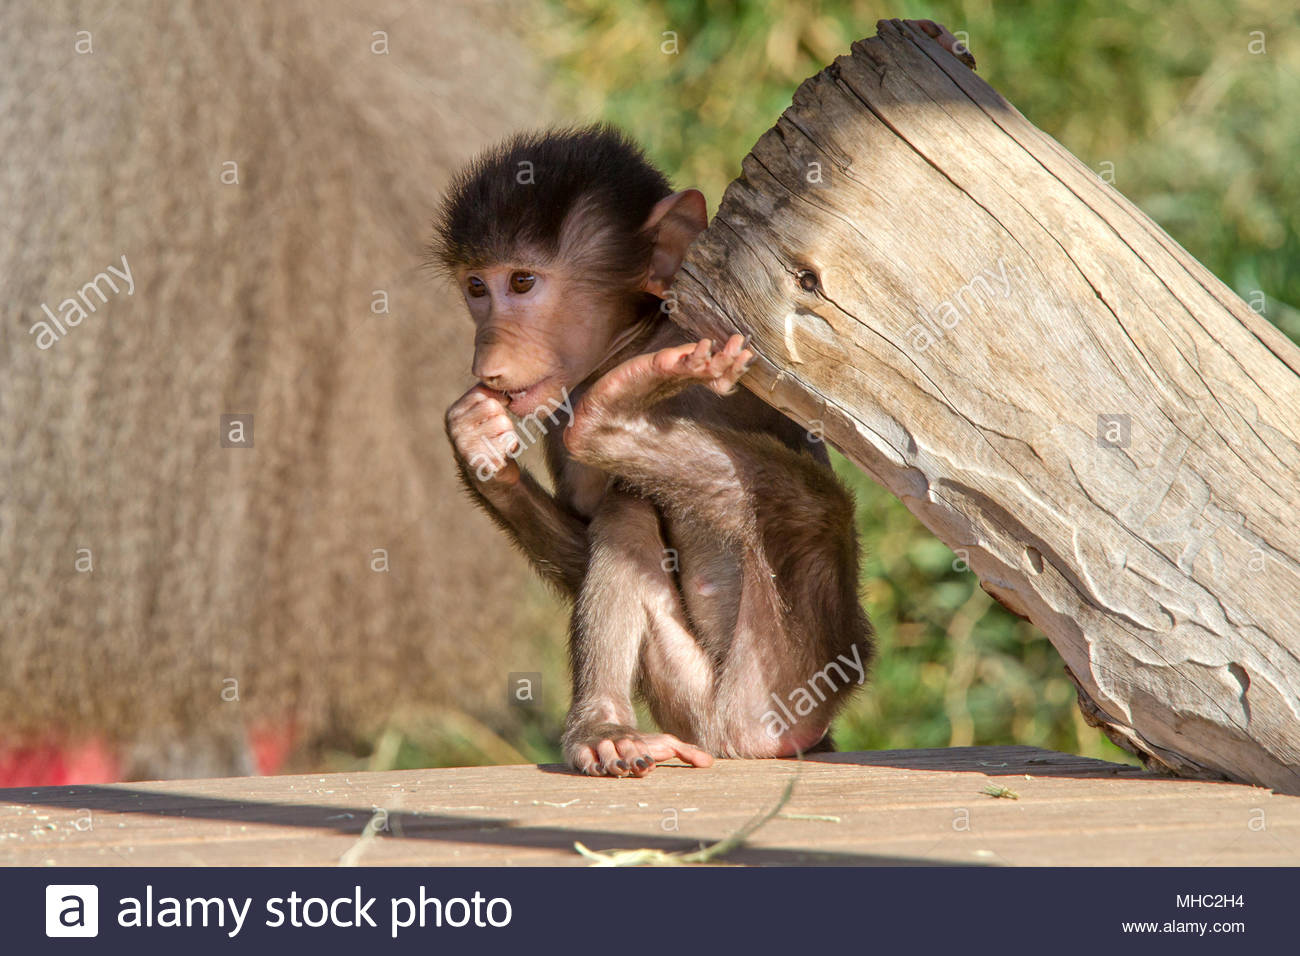 baby baboon lifting weights